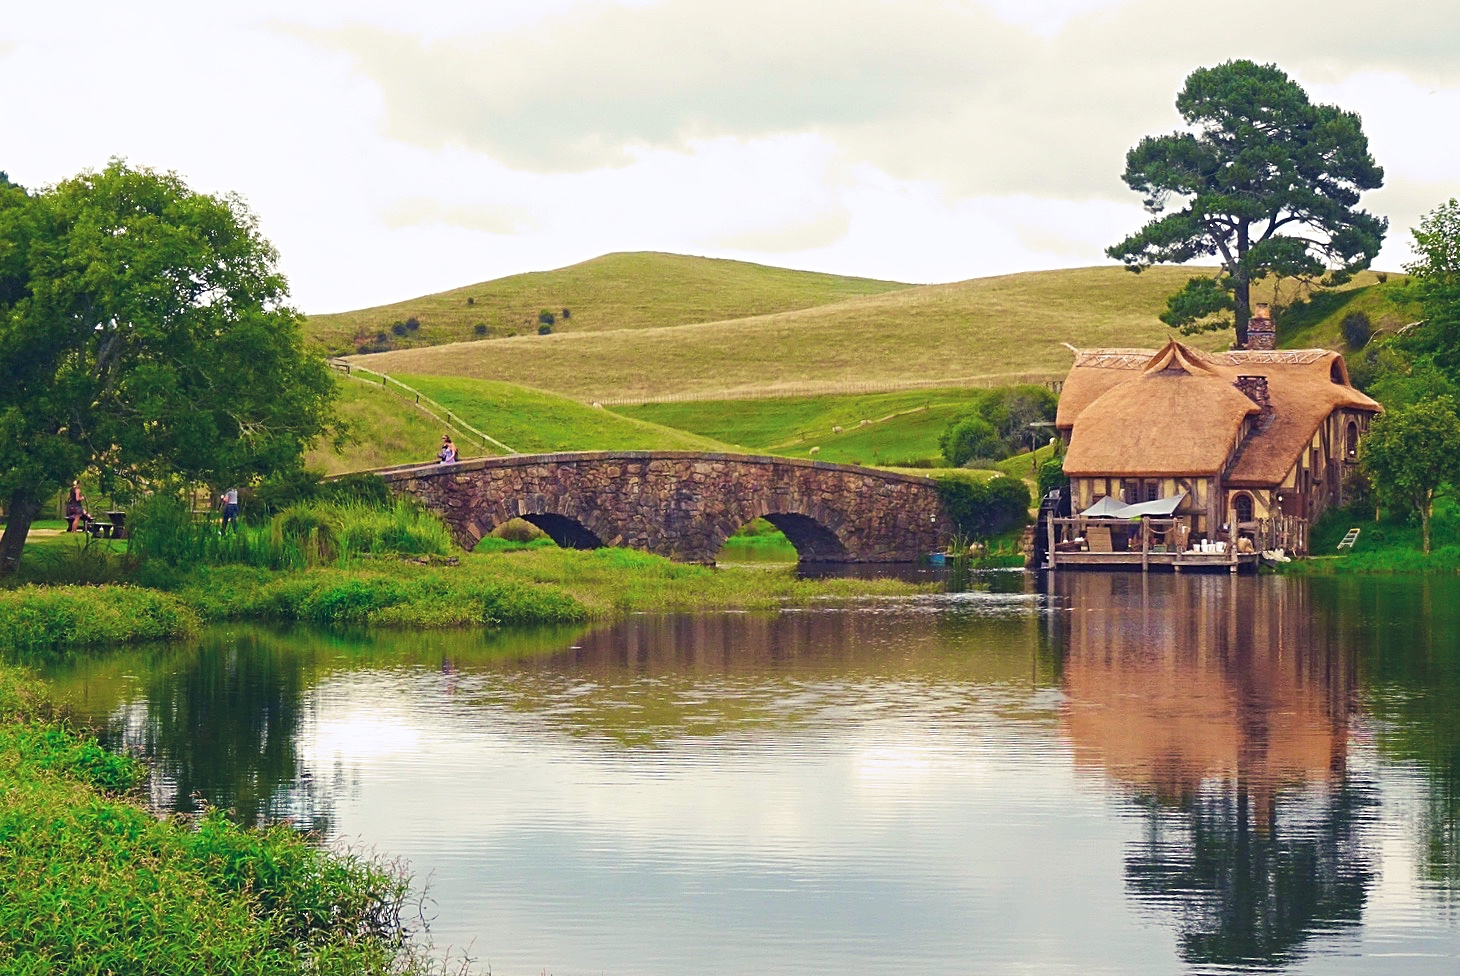 The Dragon Inn, Hobbiton, New Zealand